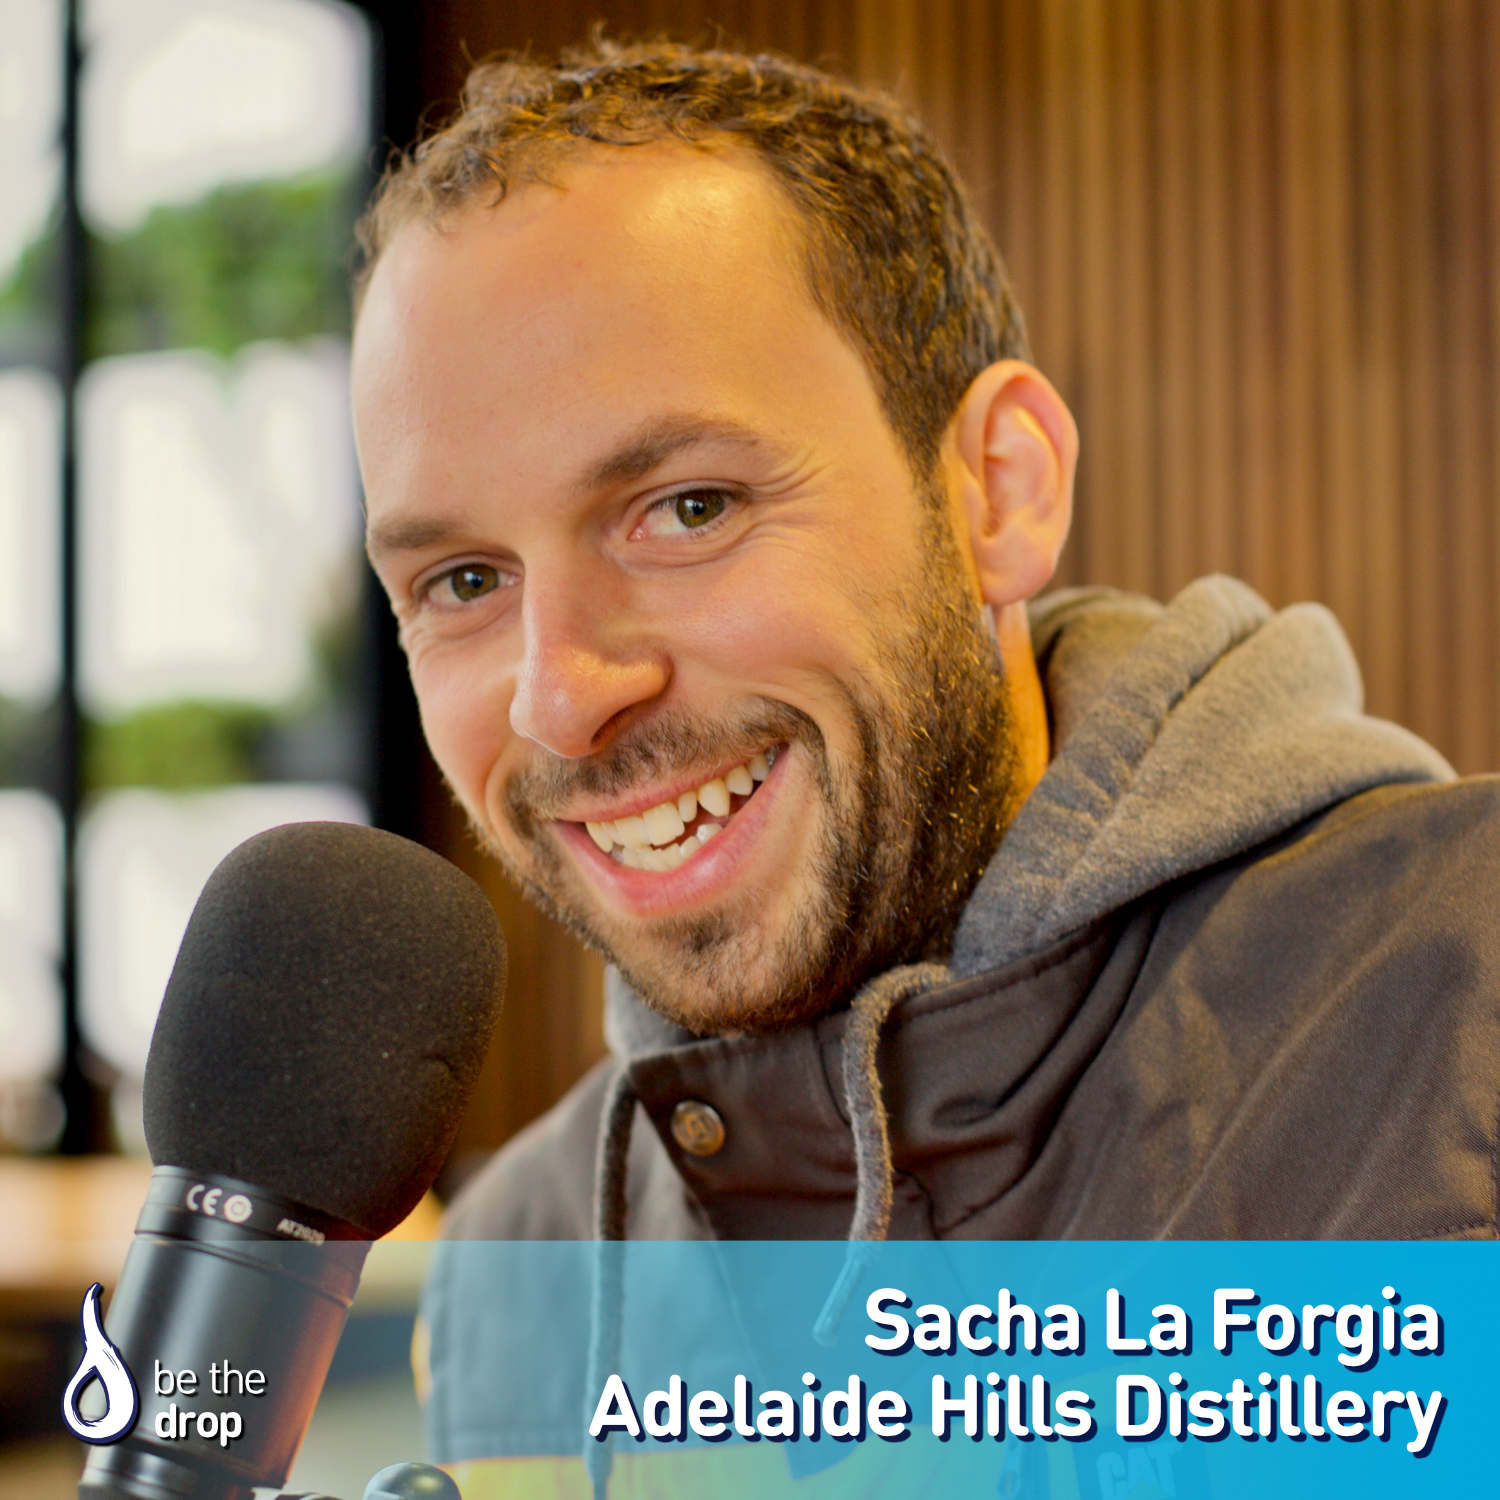 Sacha La Forgia discusses Adelaide Hills Distillery